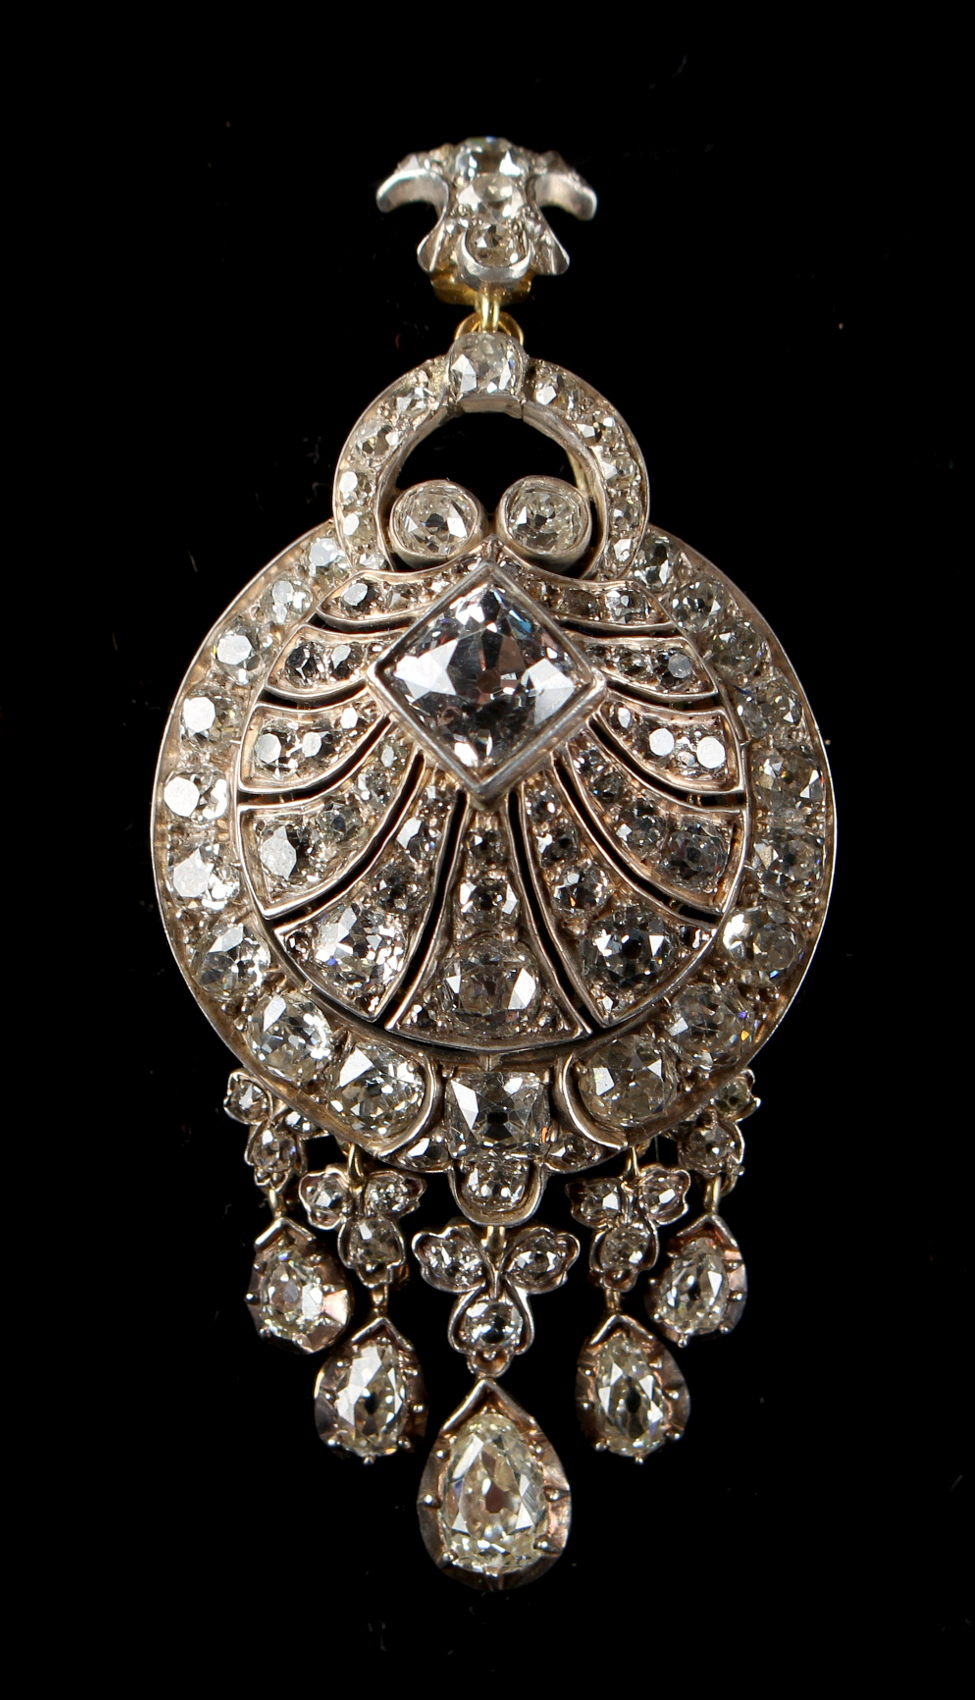 Lot 248 - A very good Georgian diamond tasselled pendant or brooch, the estimated total diamond weight 13.0